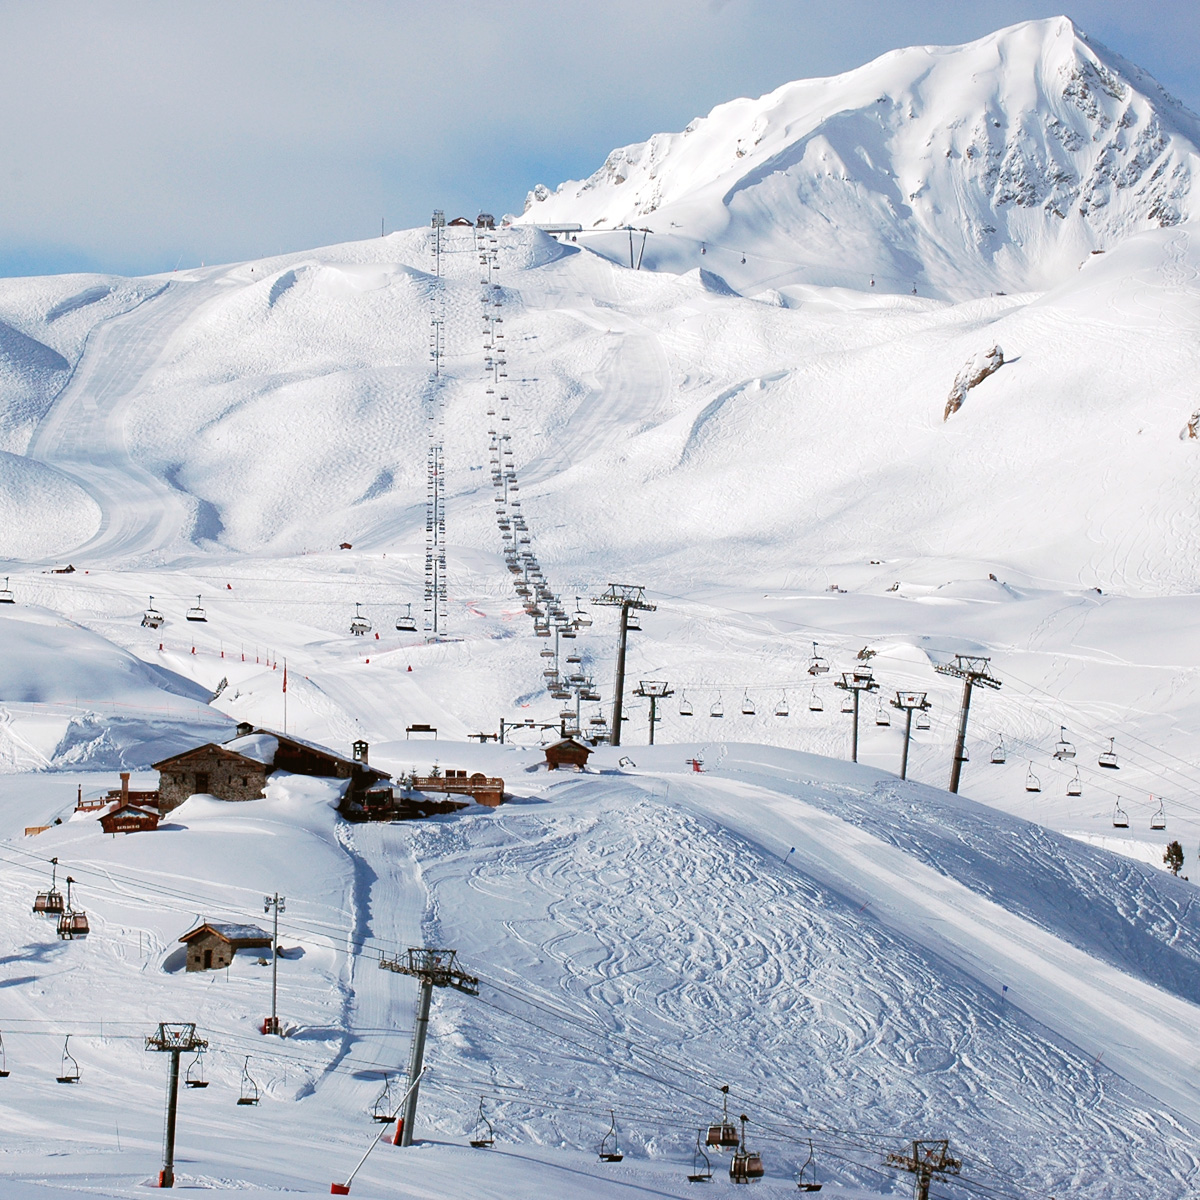 Two ski lifts reach far in to the distance taking skiers up the majestic, snowy, Aiguille rouge